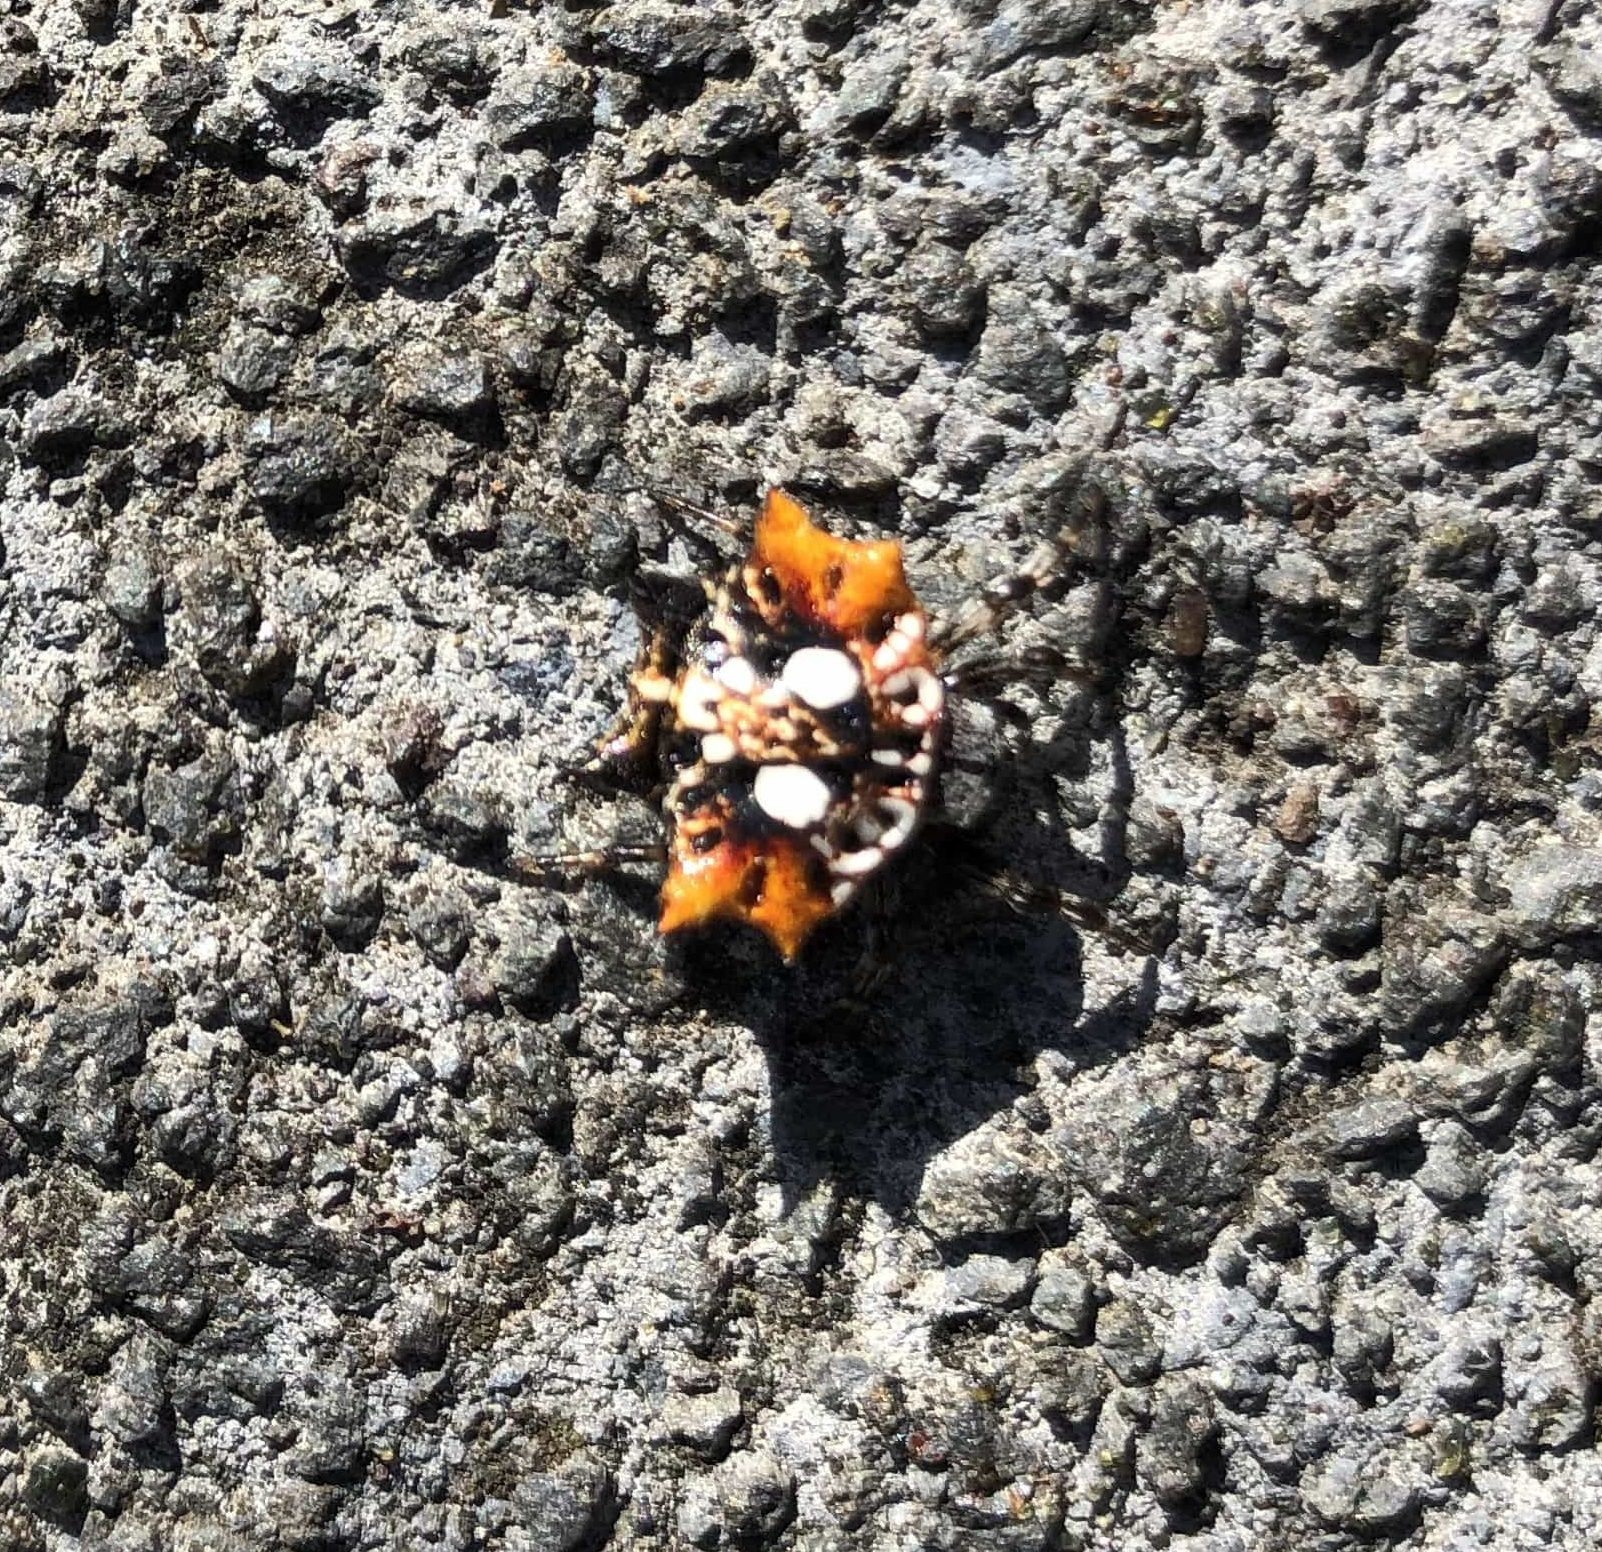 Picture of Thelacantha brevispina (Double Spotted Spiny Spider) - Dorsal